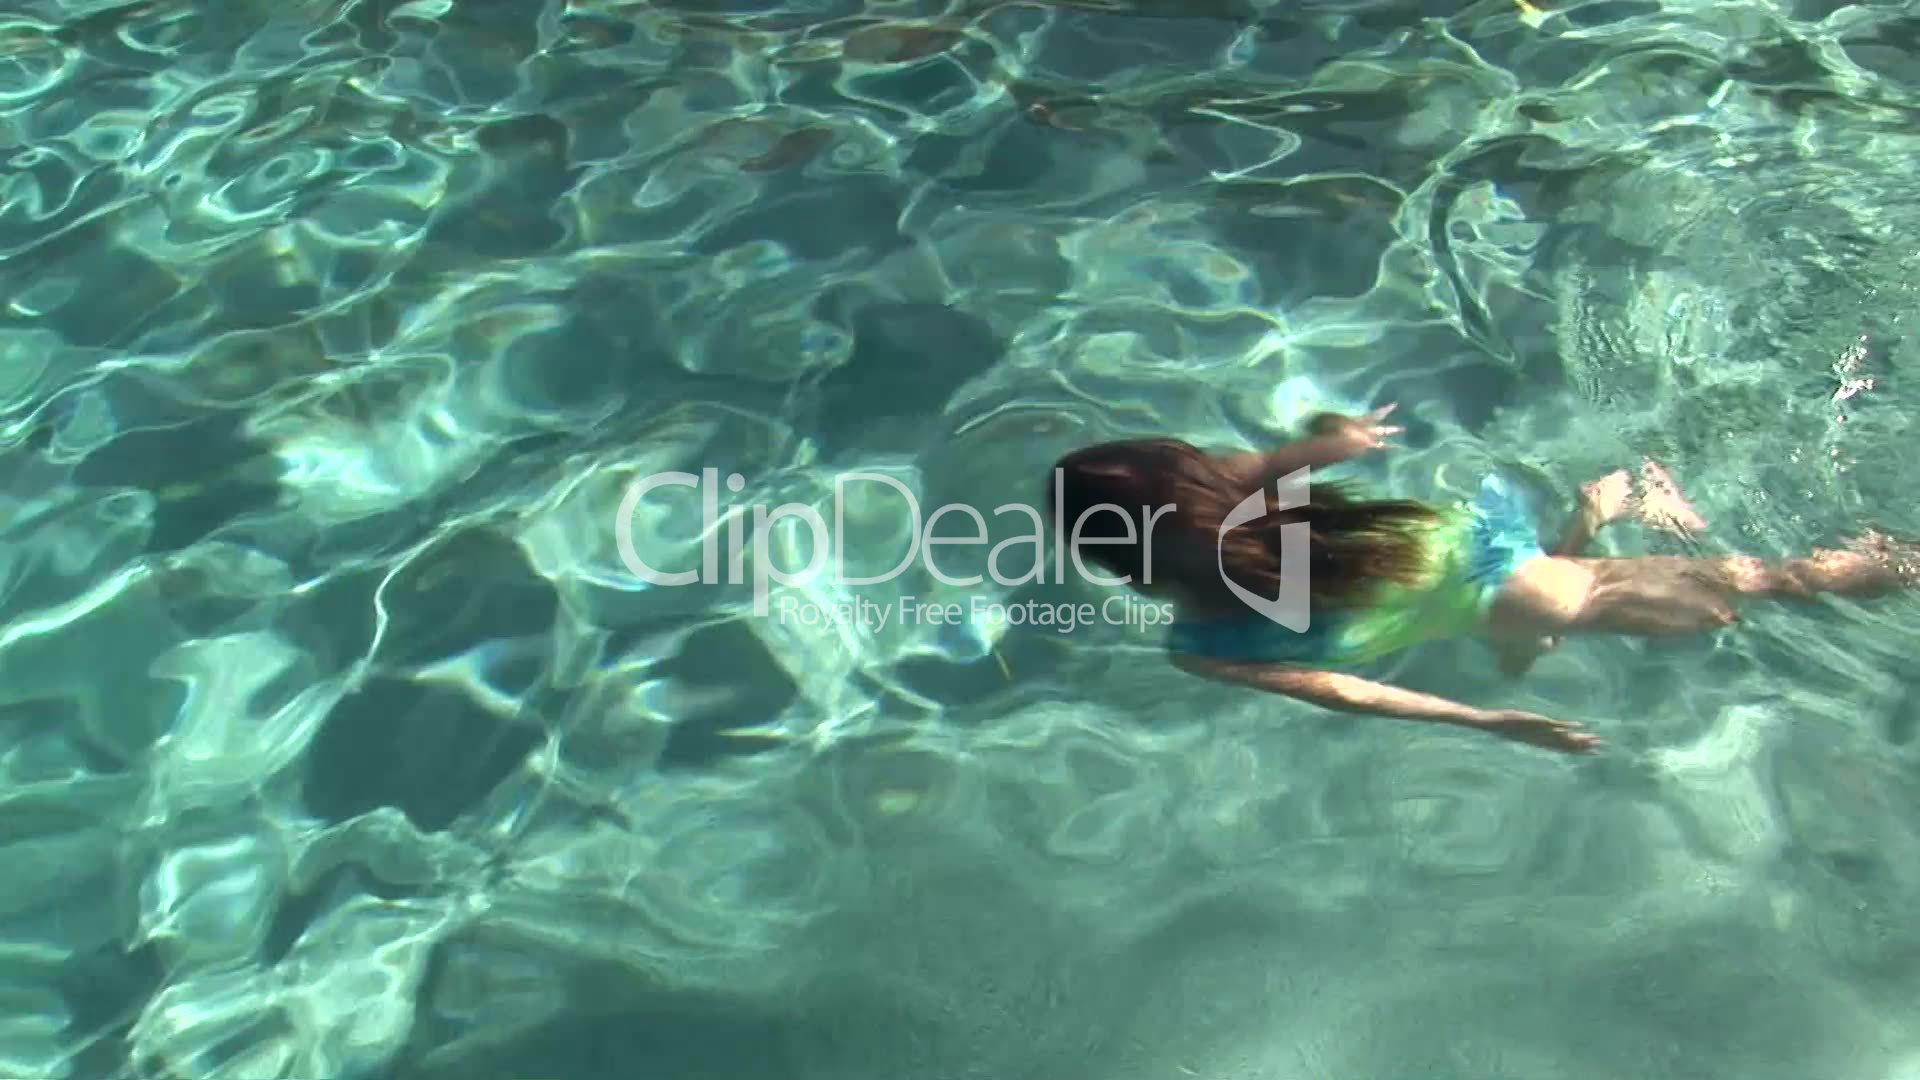 Young Girl Swimming Underwater: Royalty-free video and ...